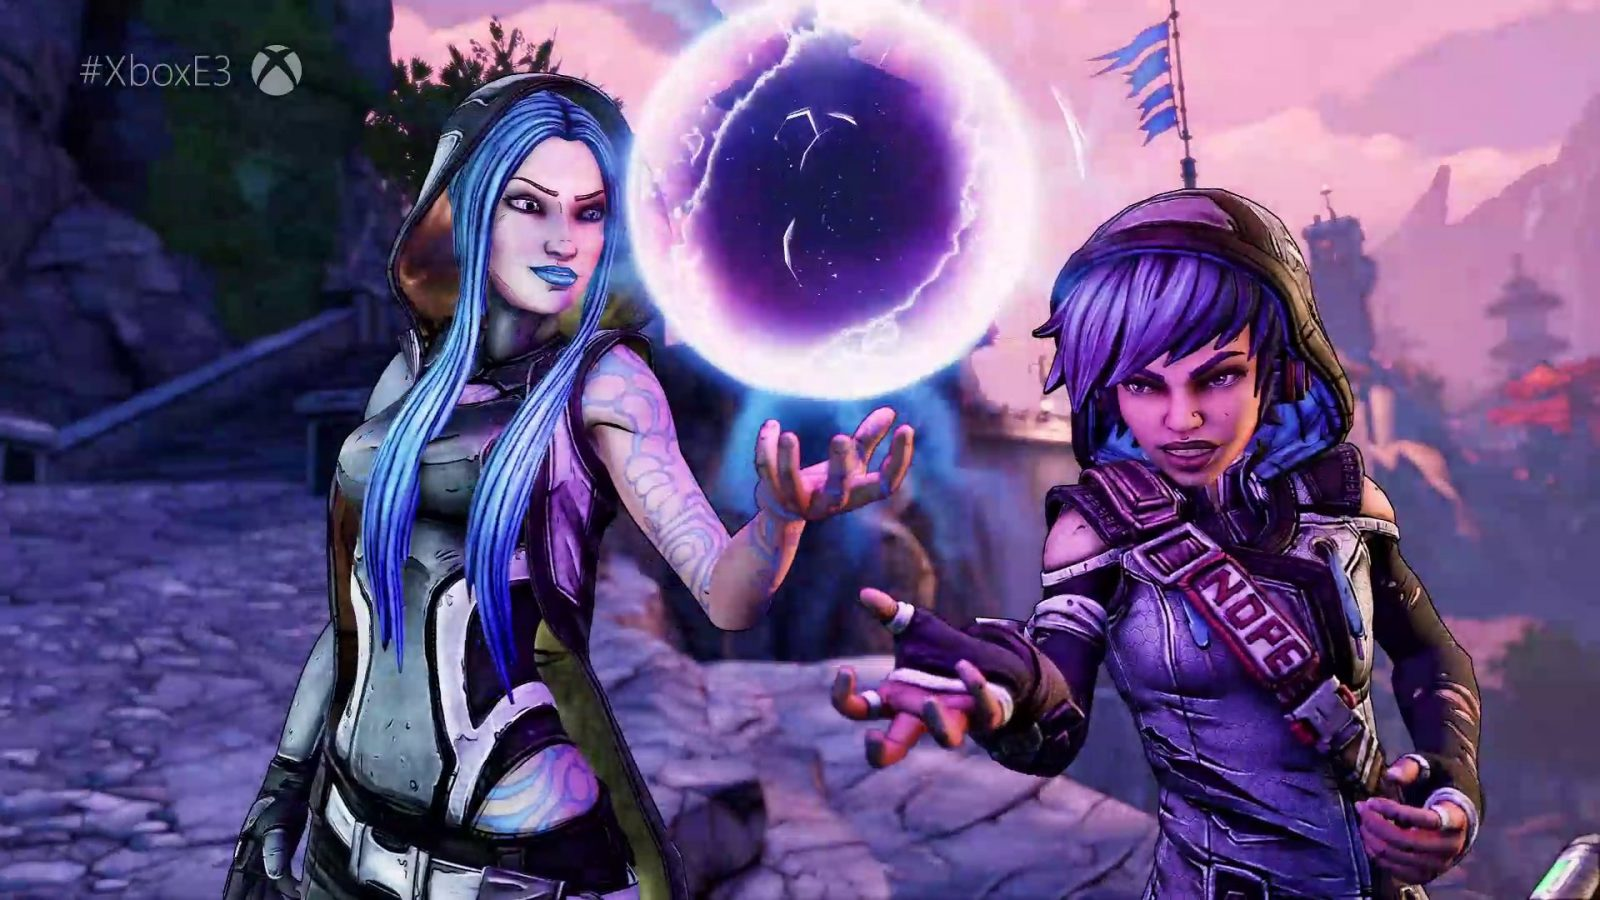 Borderlands to Destiny and Beyond